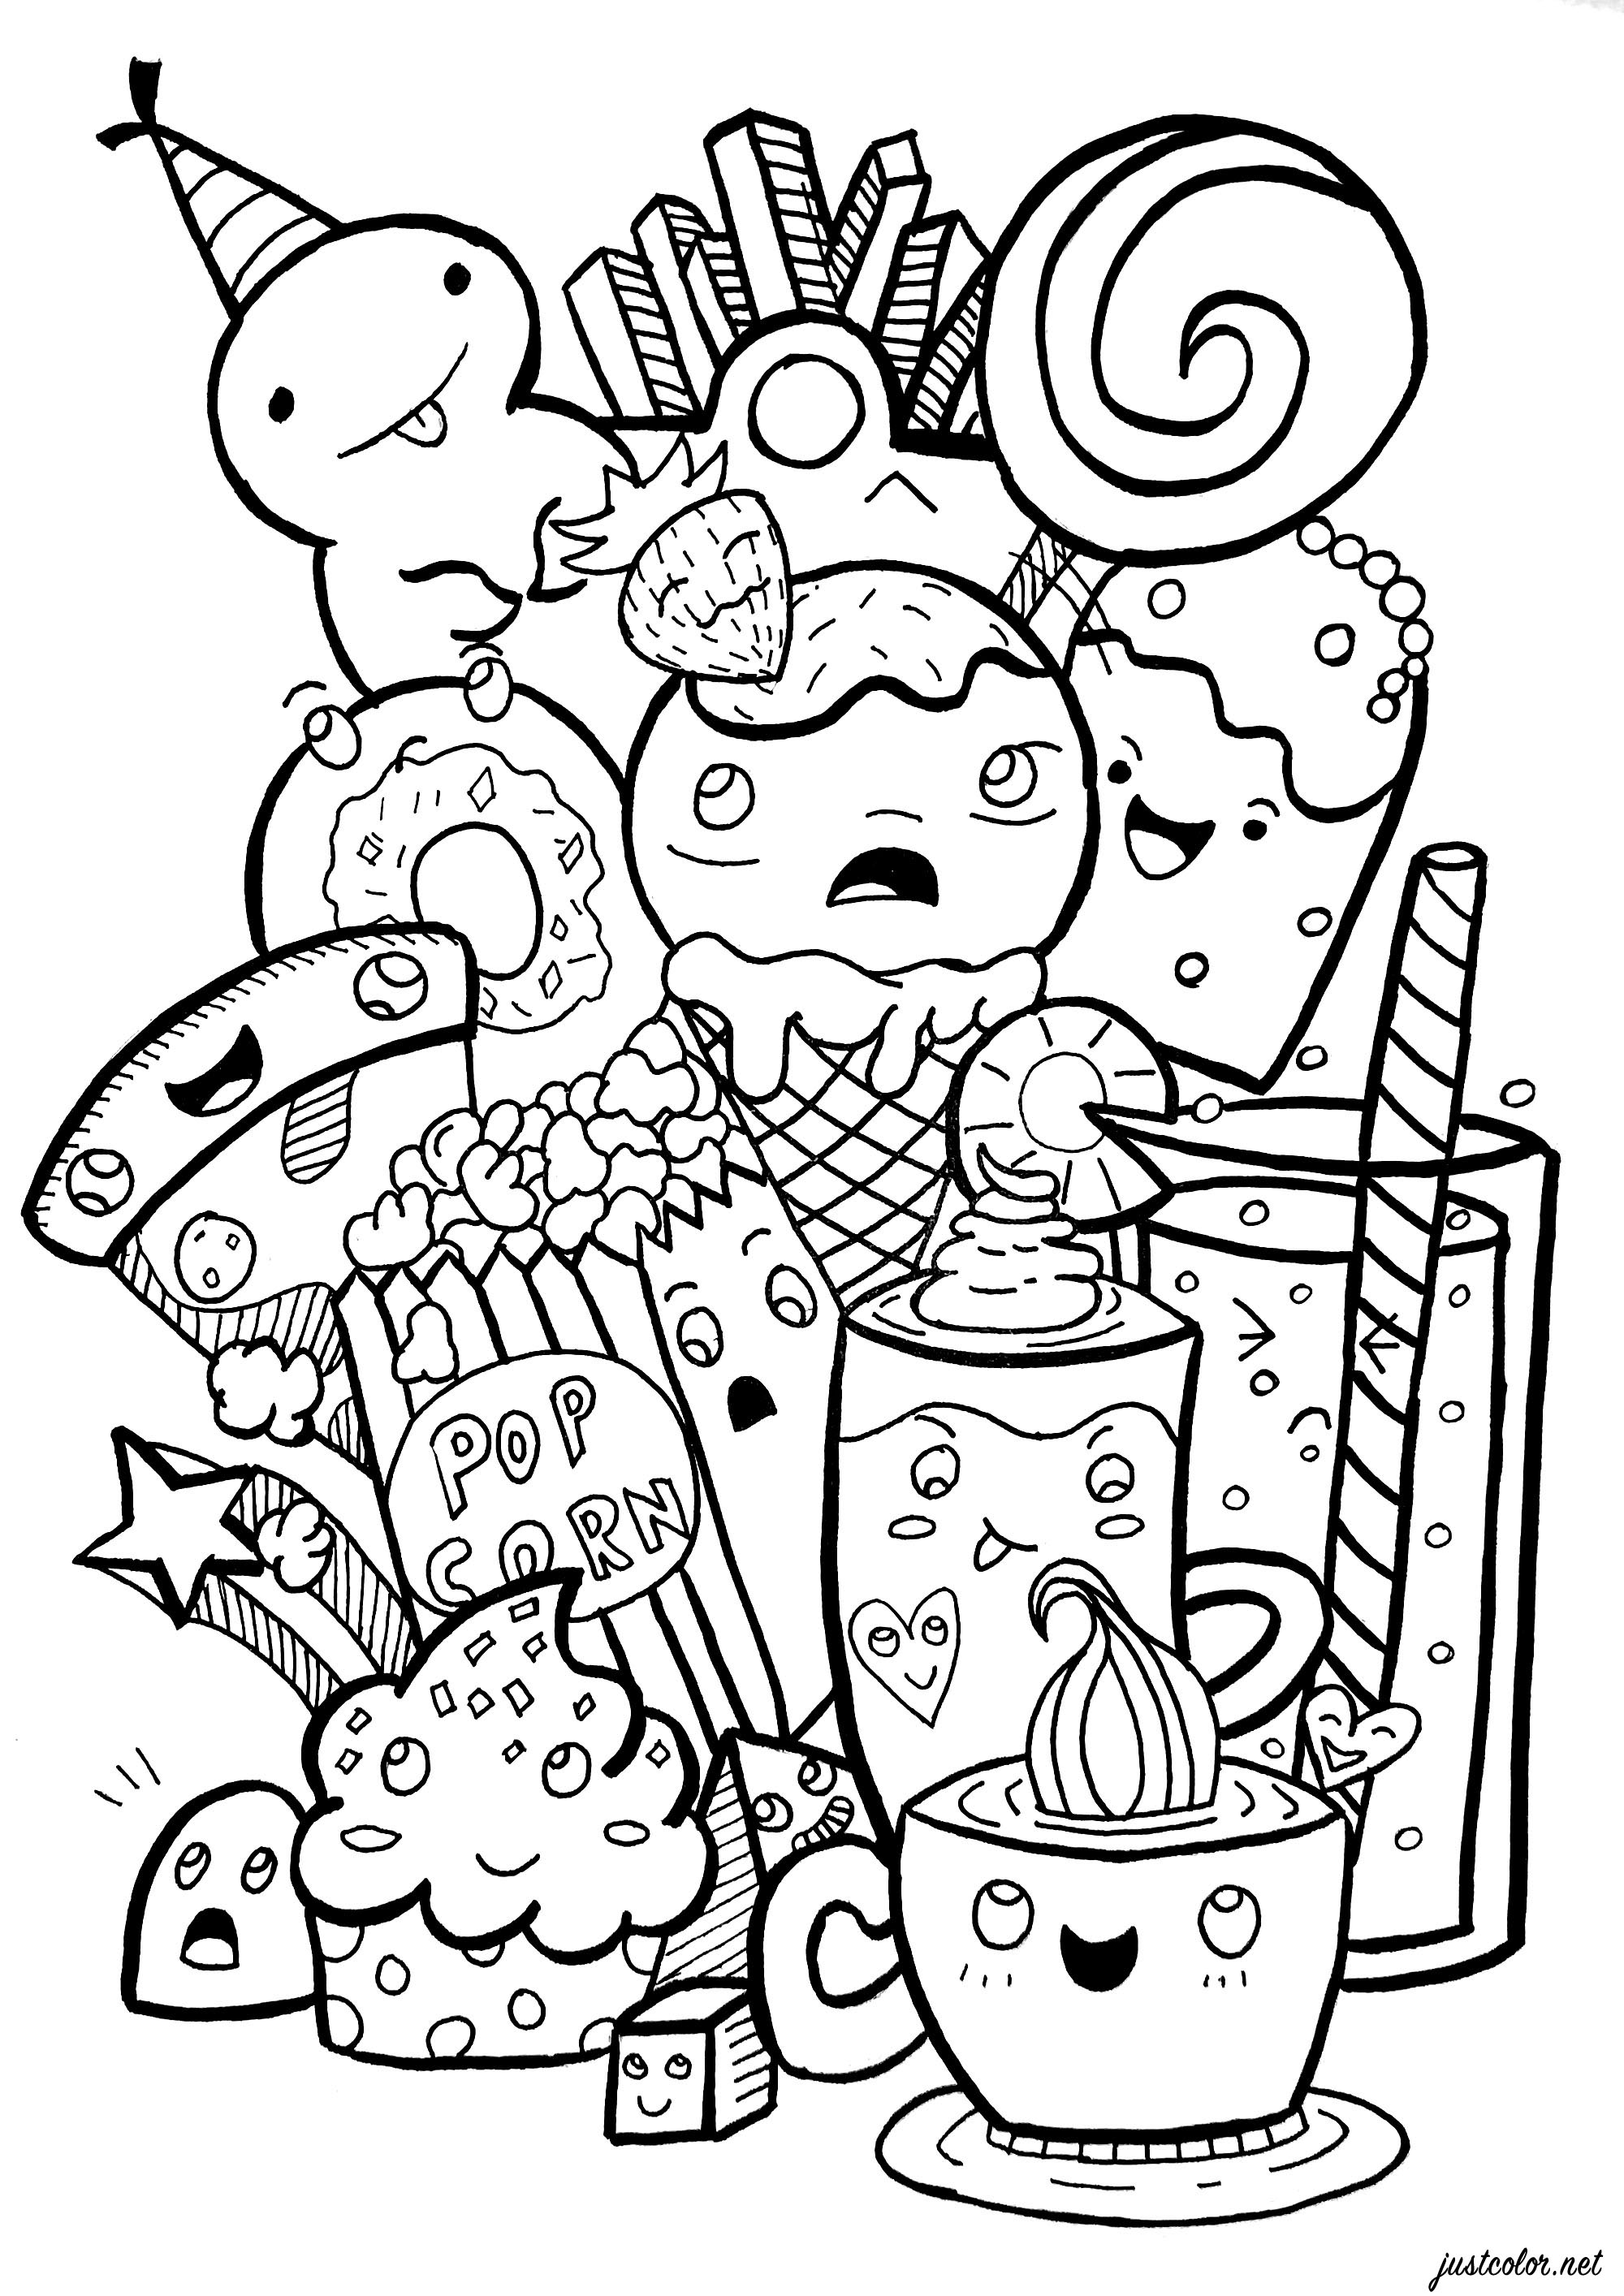 doodle coloring pages free doodle art coloring pages coloring home pages coloring doodle